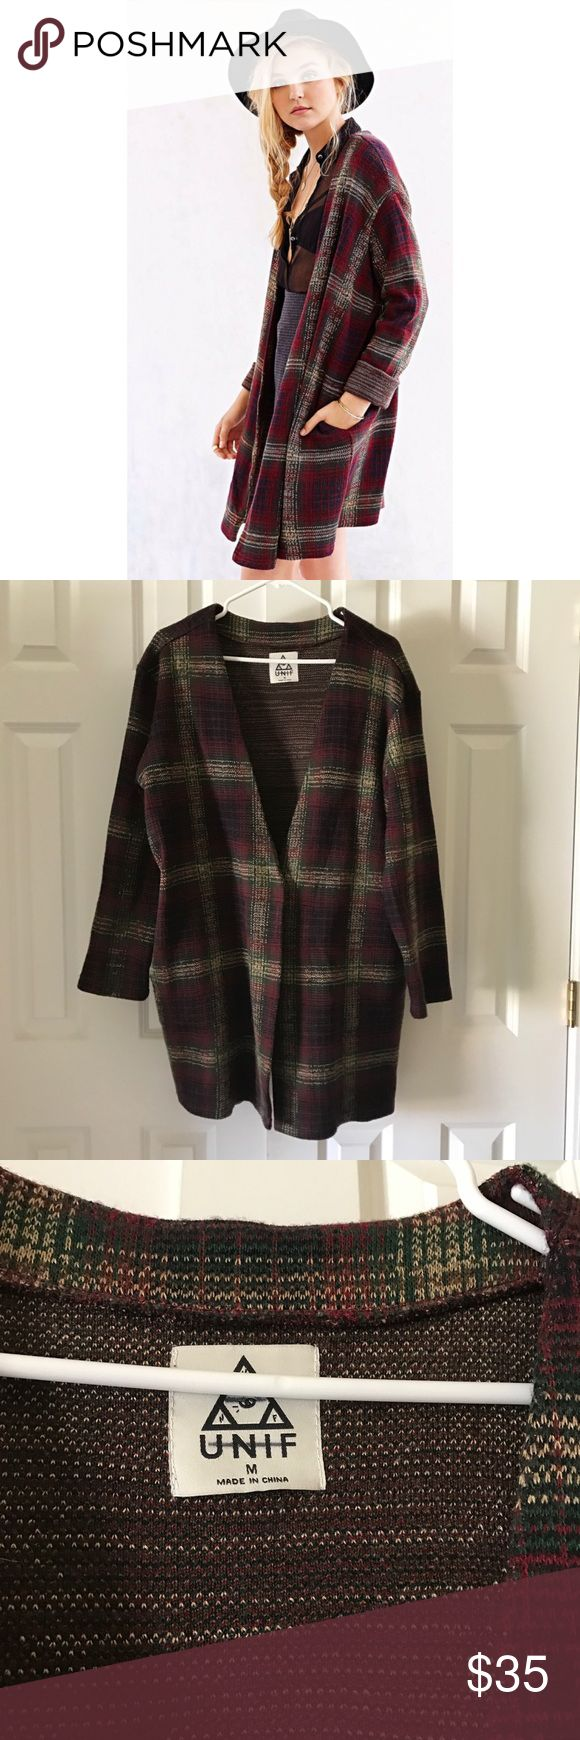 """NWOT UNIF plaid duster BRAND NEW MINT CONDITION. Size medium, and is super cute oversized on S-M sized ladies/gents. No trades, no """"lowest"""", no lowballing! Make an offer pls! UNIF Sweaters Cardigans"""